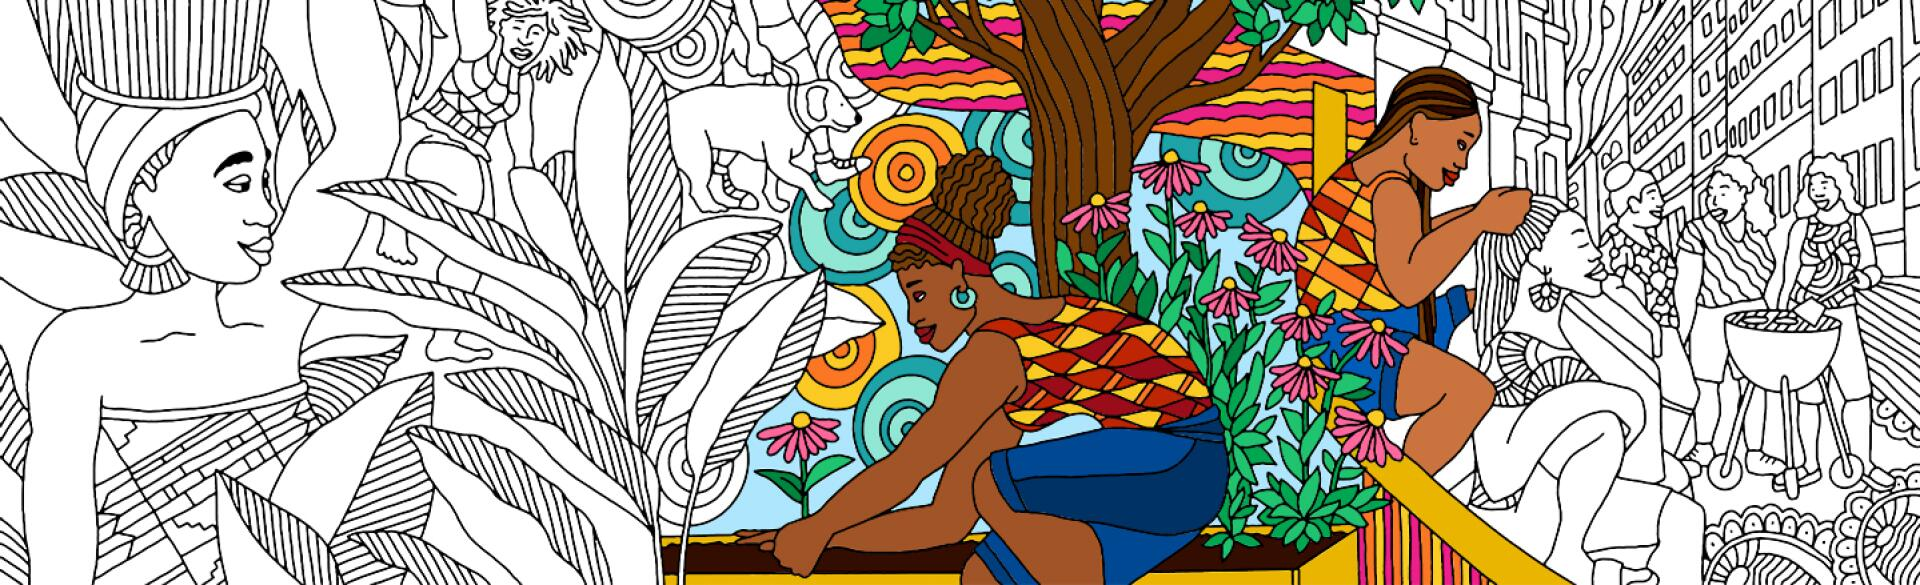 coloring_pages_by_simone_martin_newberry_1440x600